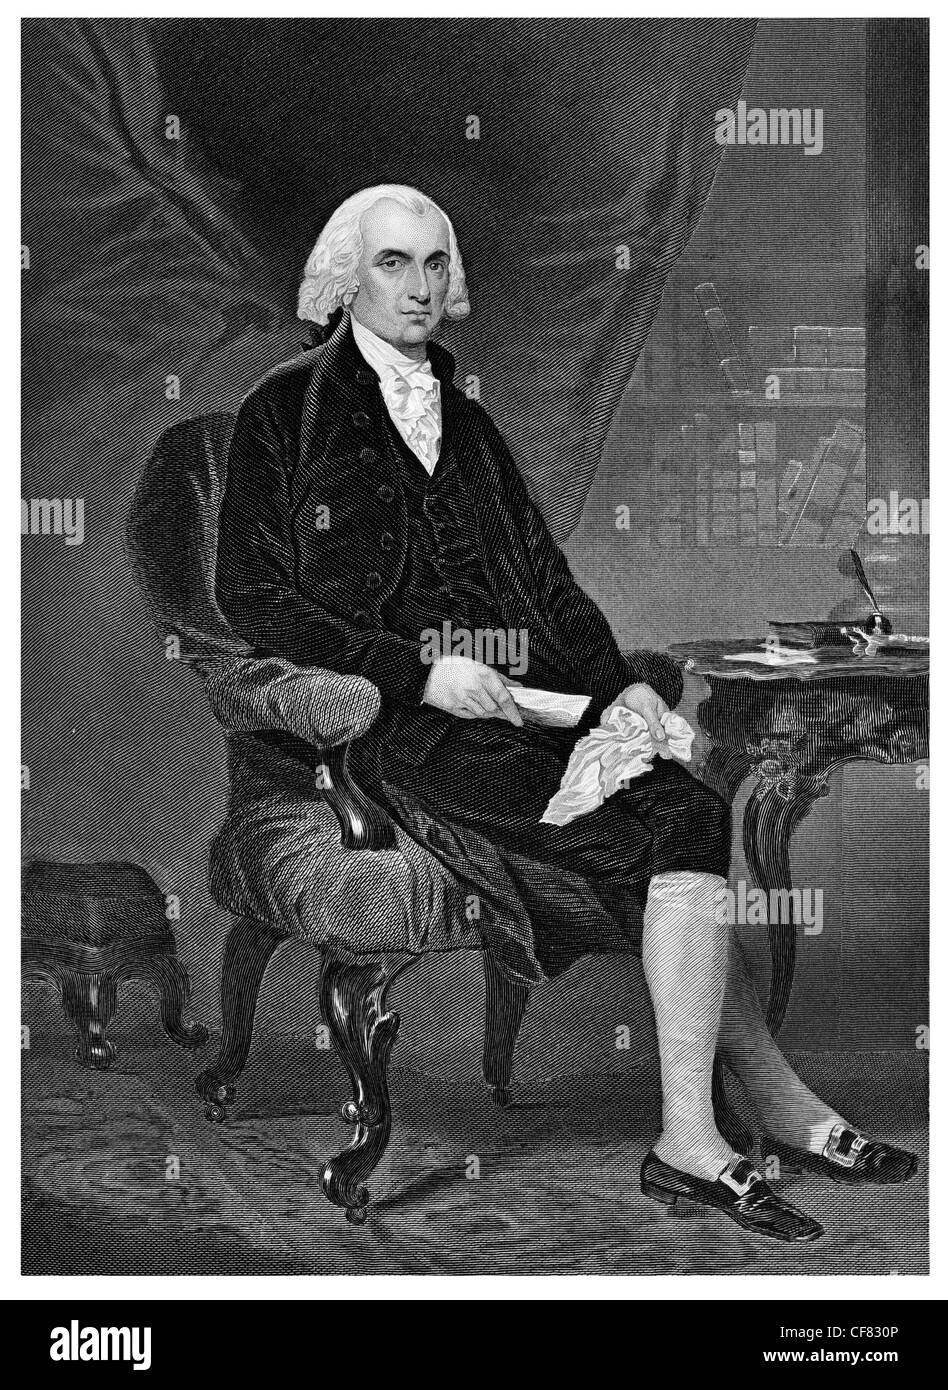 James Madison 1751 1836 Fourth president of the United States 1809  Democratic Republican and Secretary of State - Stock Image